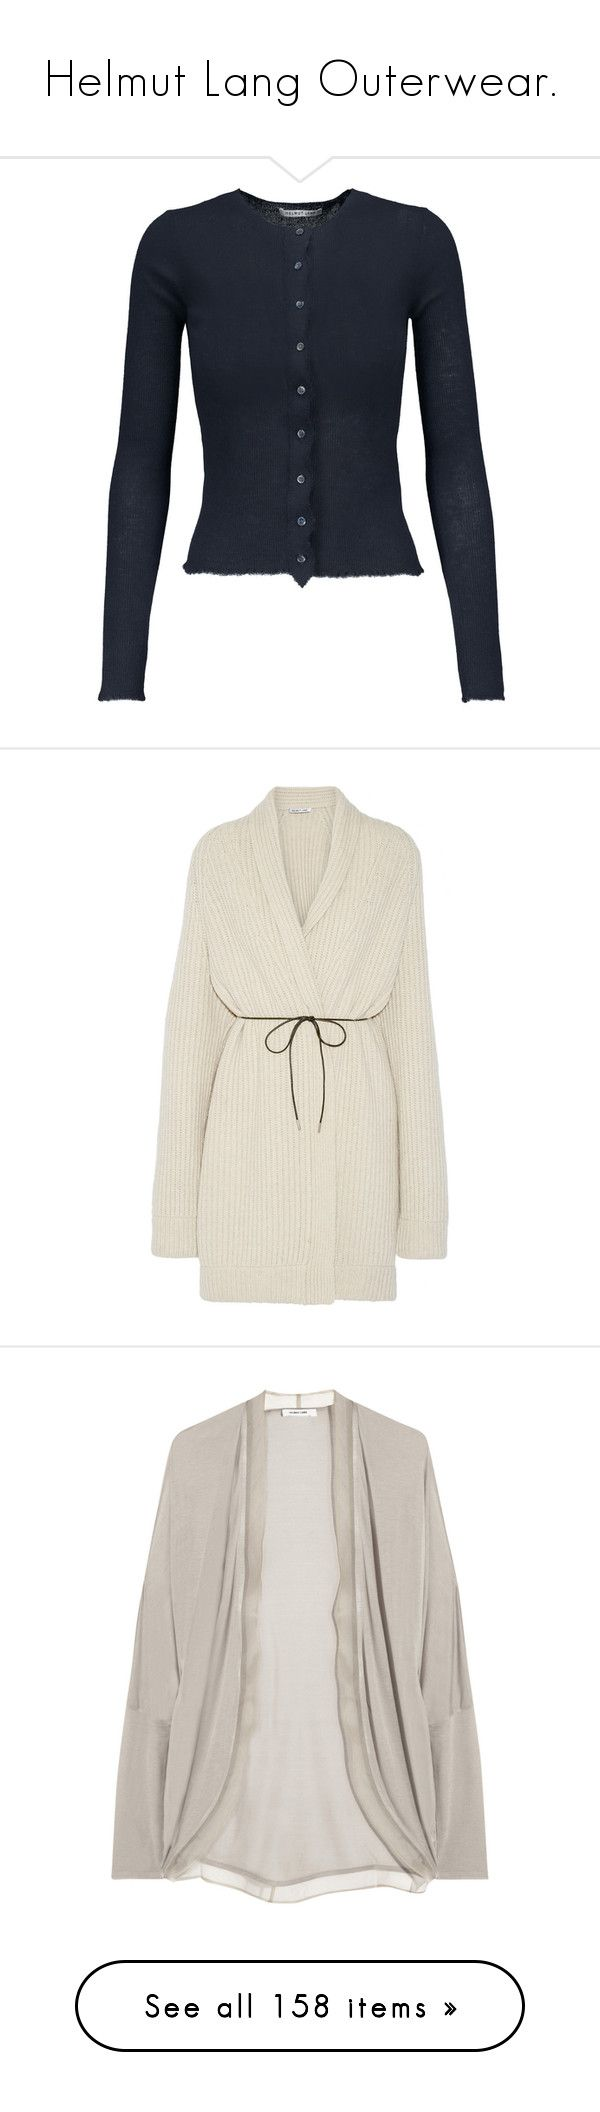 """""""Helmut Lang Outerwear."""" by that-drumming-noise ❤ liked on Polyvore featuring tops, cardigans, jackets, outerwear, sweaters, dresses, neutrals, helmut lang cardigan, beige cardigan and tie cardigan"""